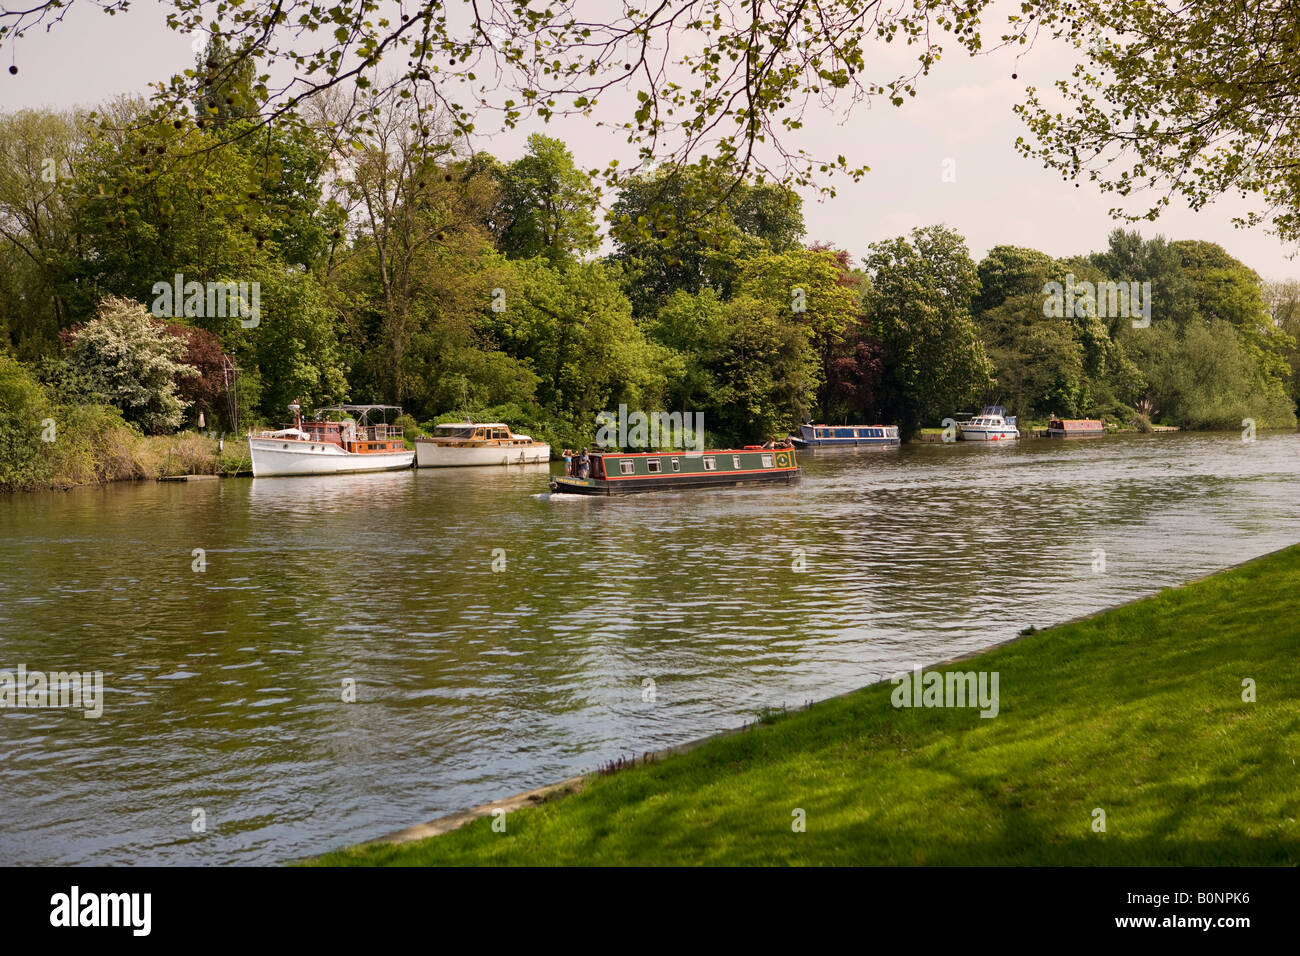 A Canal Barge Sailing Past Pleasure Boats On The River Thames In Berkshire Viewed From Windsor Home Park Castle